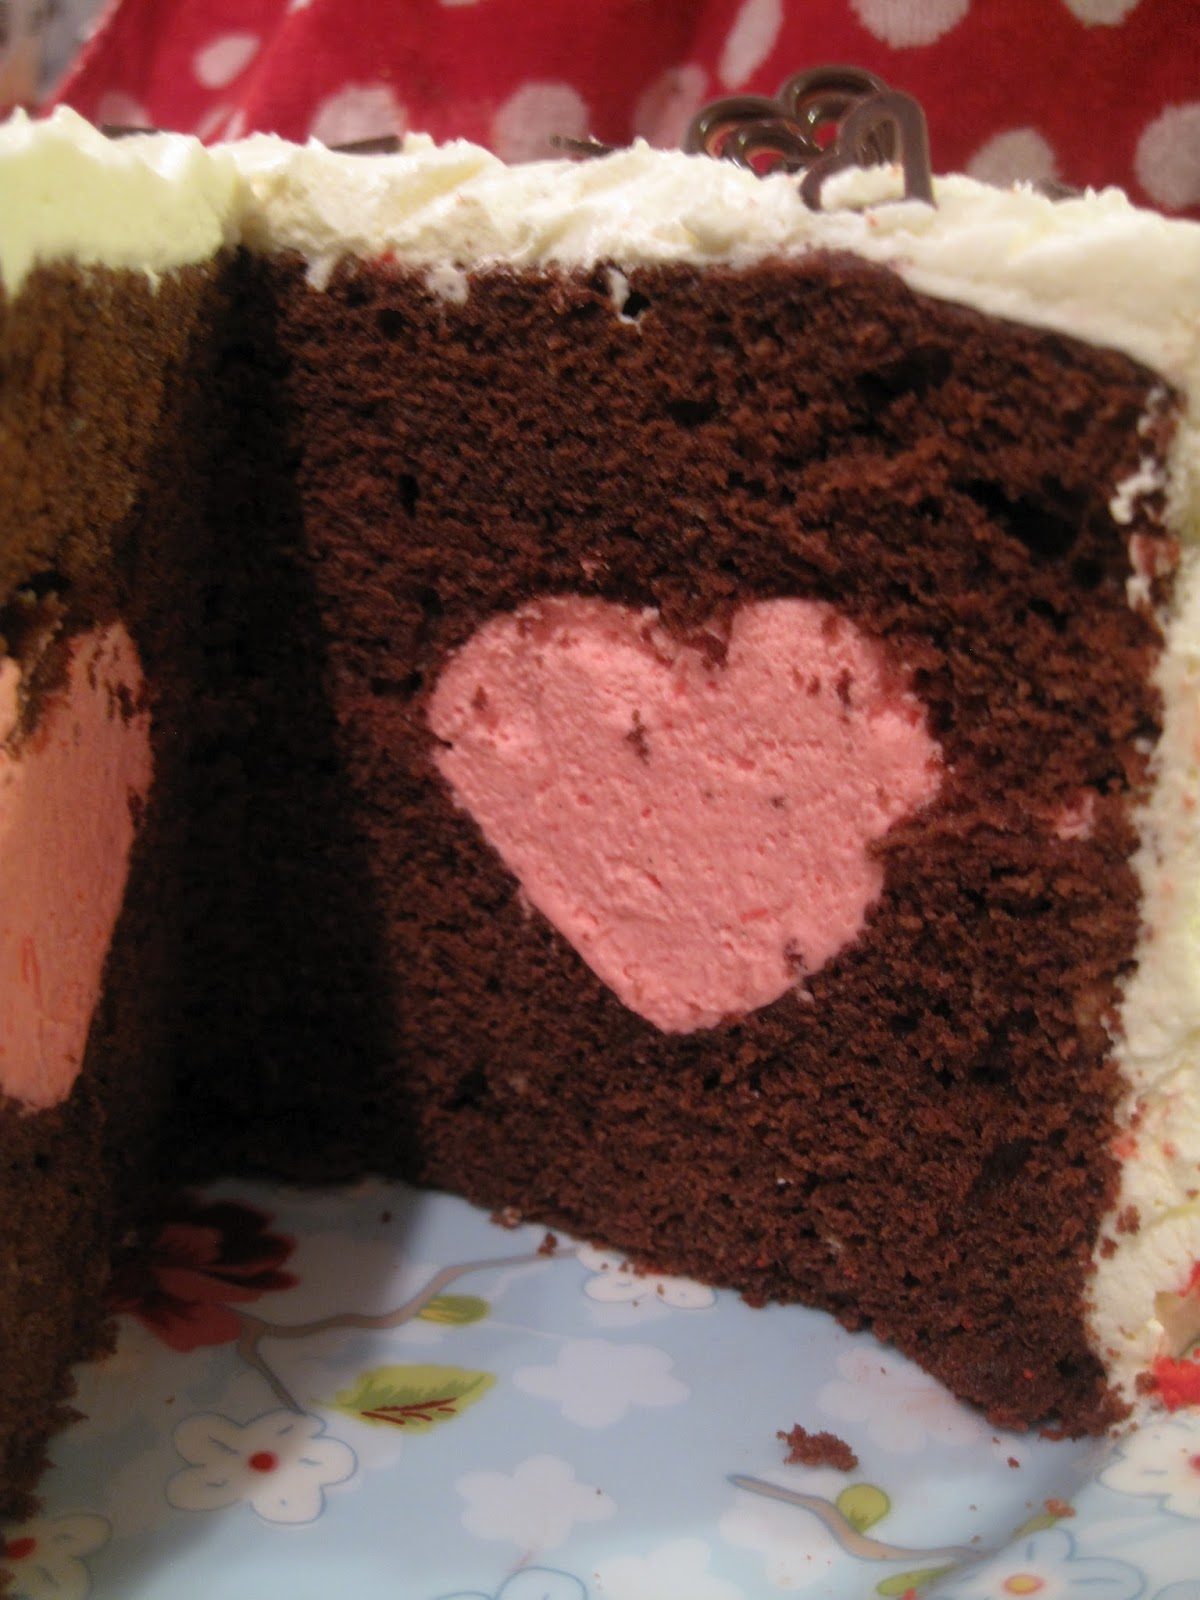 Wilton Heart Tasty Fill Cake A how to gIrL bAkeS